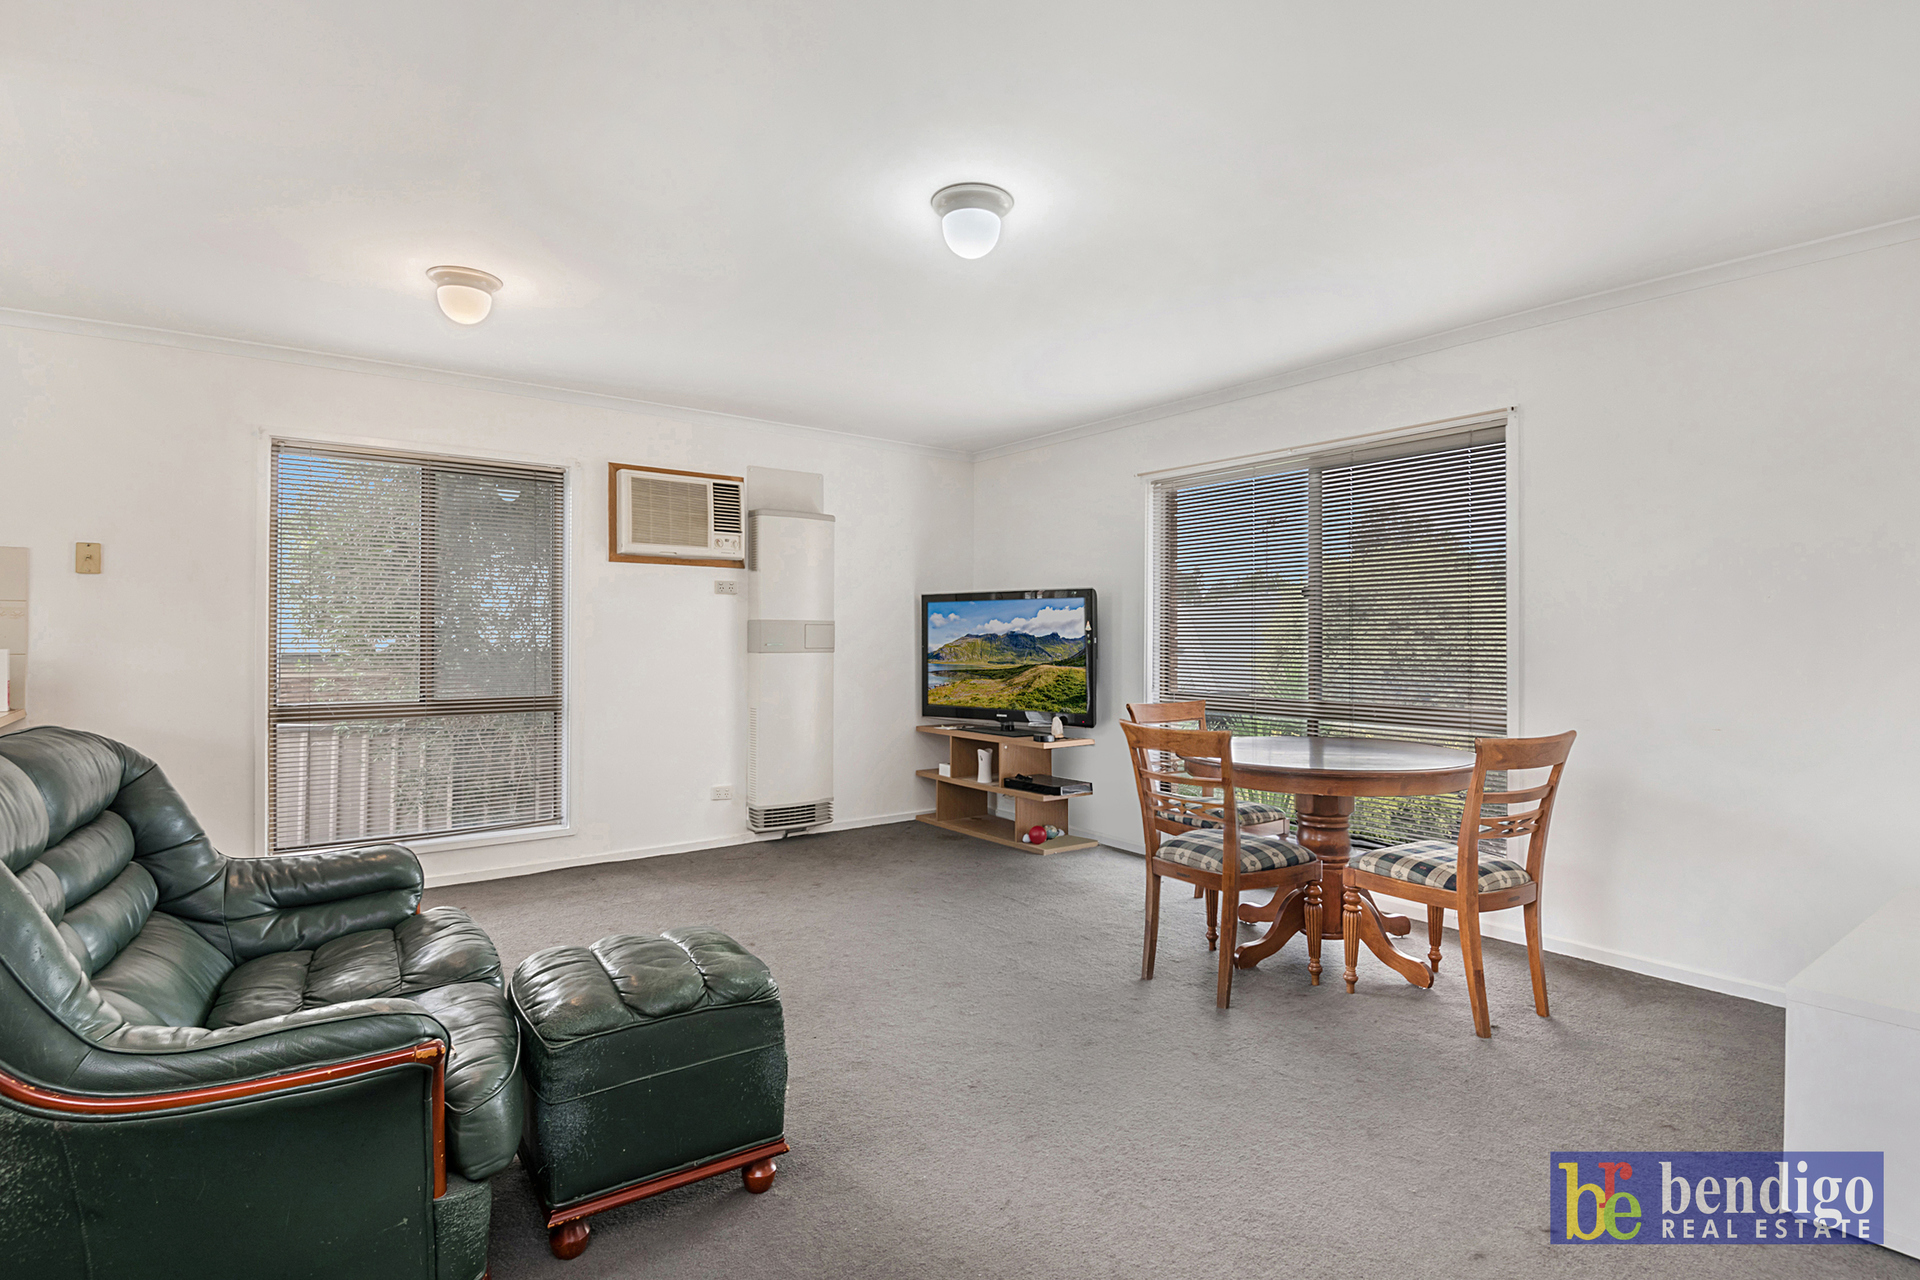 4/63 Booth Street Golden Square